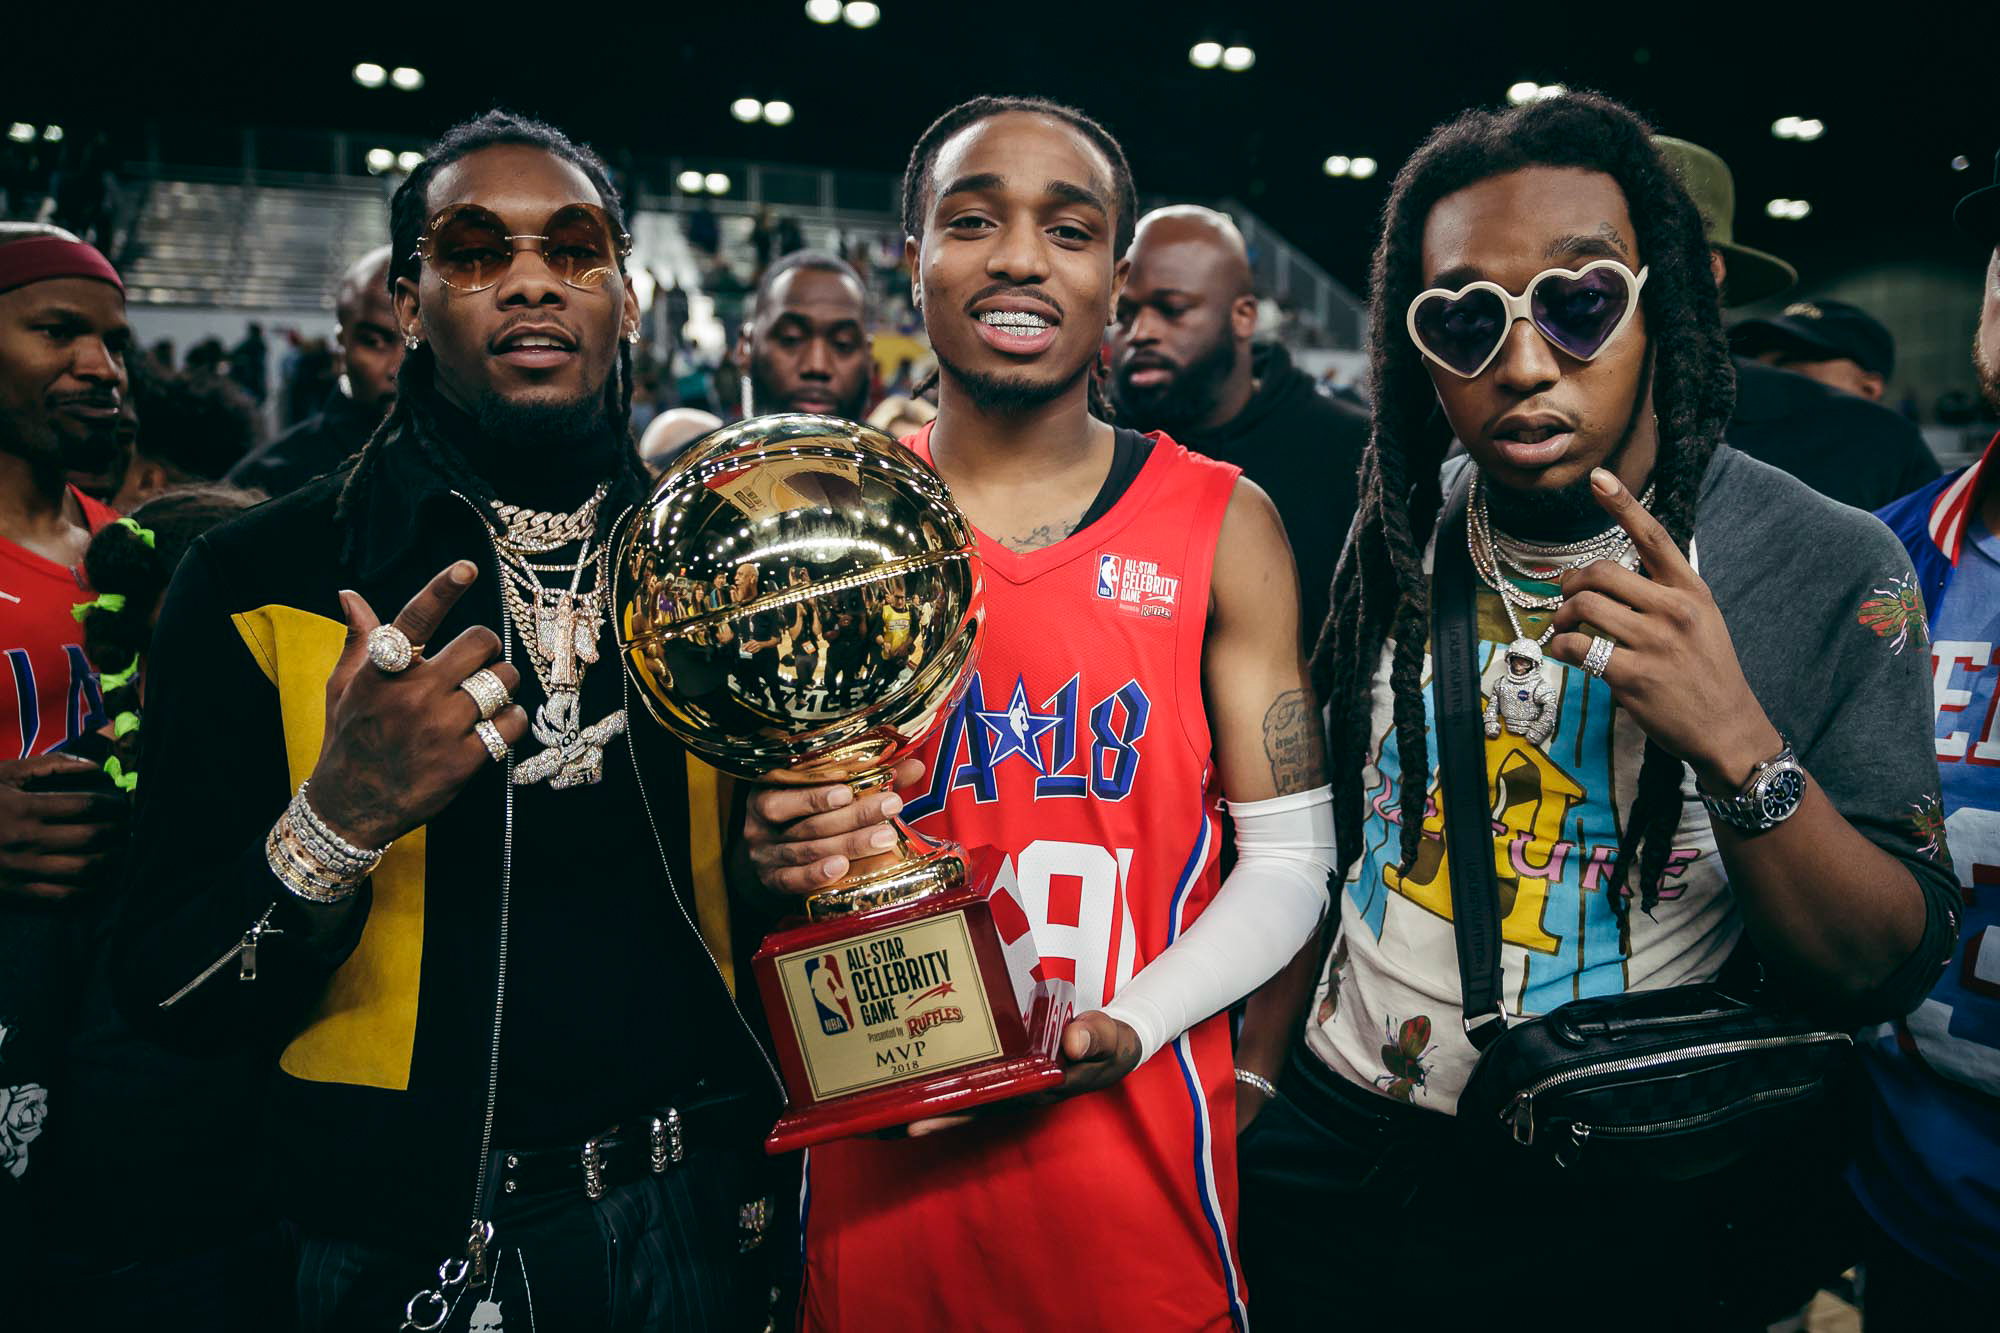 ... All-Star Celebrity game. Quavo (center) is joined by fellow Migos  members Offset (left) and Takeoff (right) during his MVP trophy  presentation. 64265f939